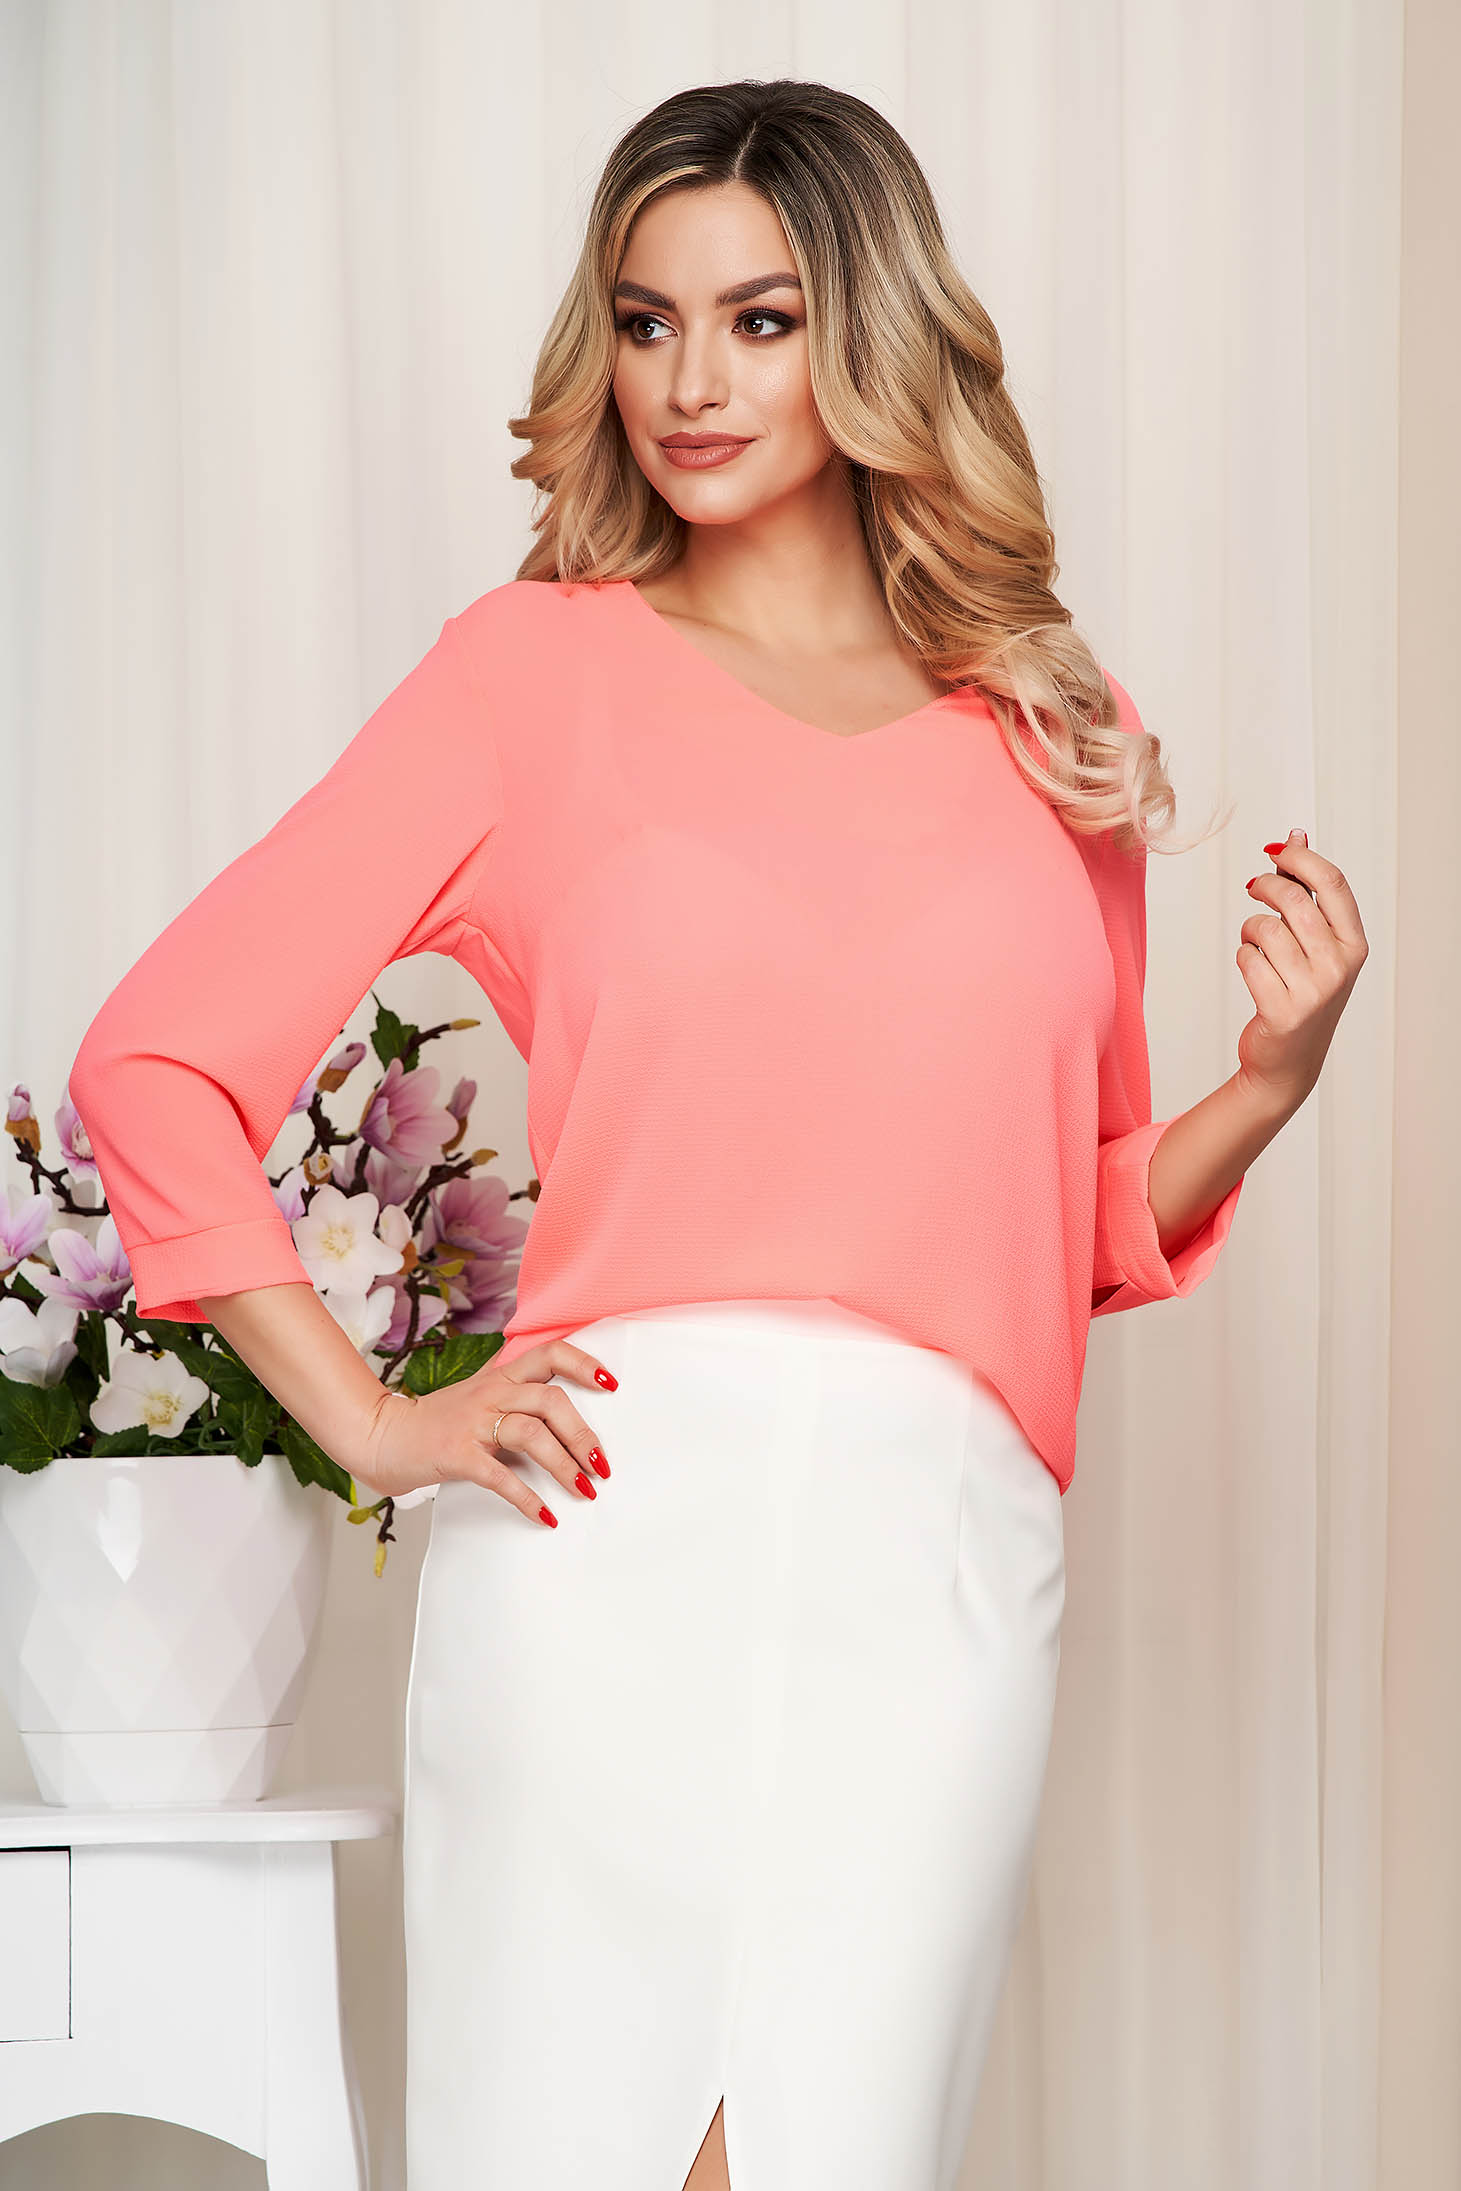 Women`s blouse pink loose fit thin fabric slightly transparent fabric